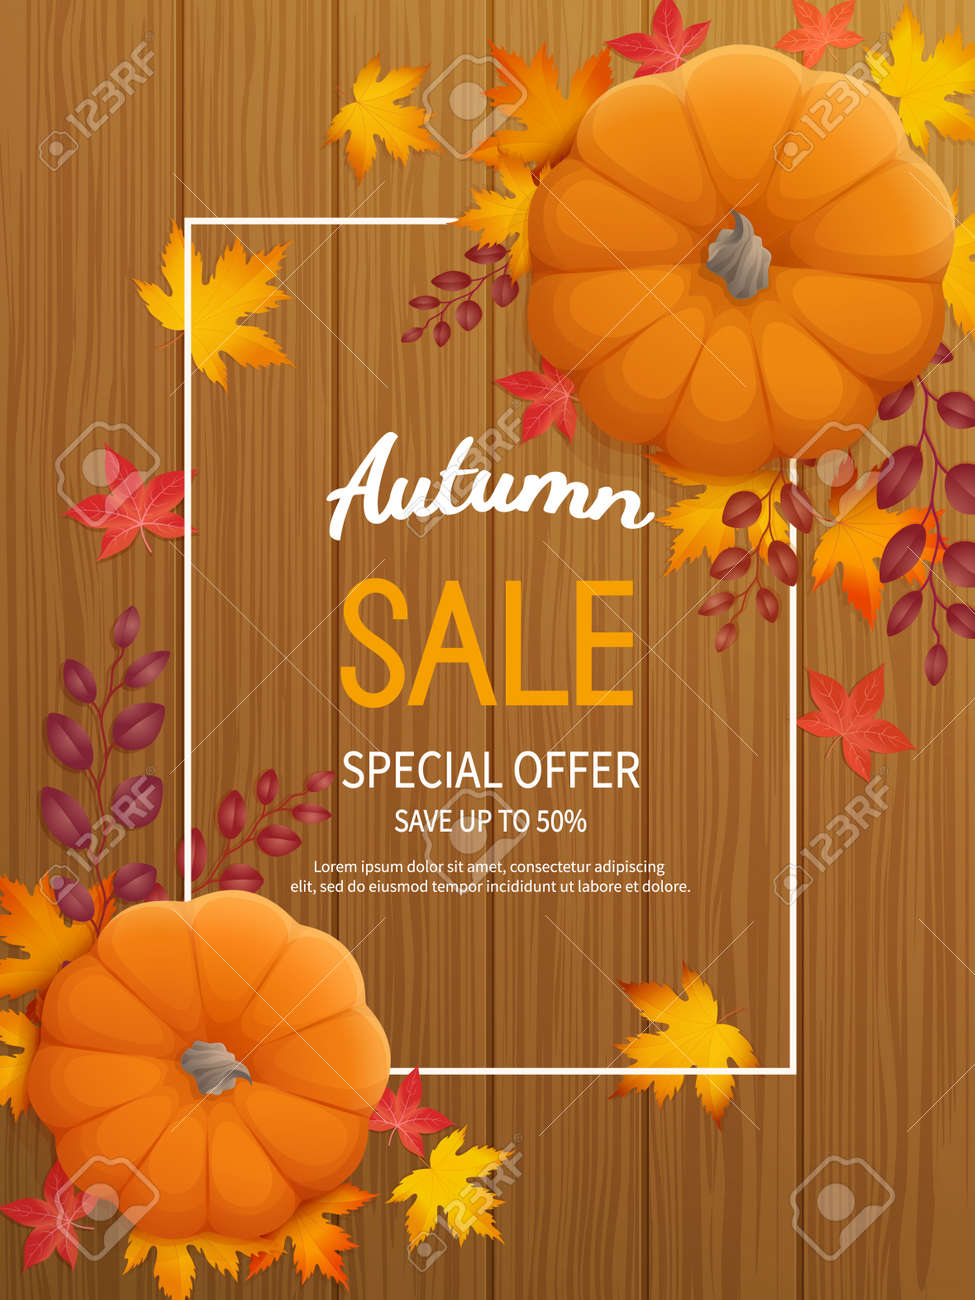 Vertical banner flyer with pumpkin, leaves on a wooden table Special seasonal offer. - 154412860